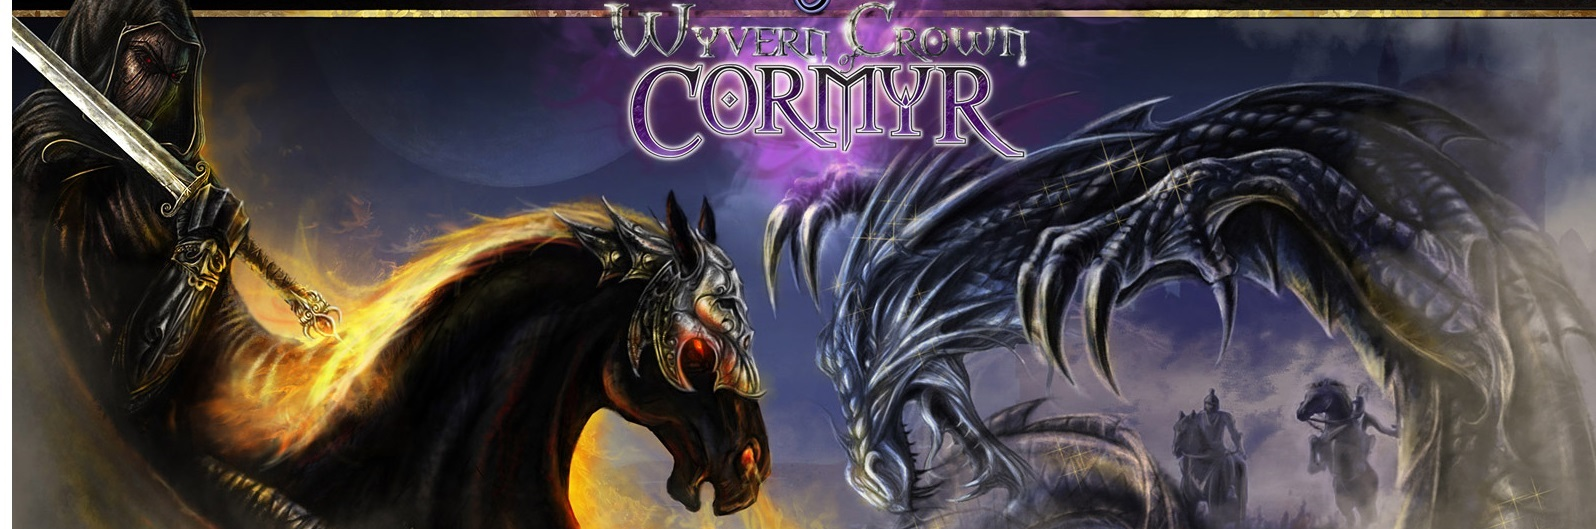 wyvern_crown_cover-banner.jpg